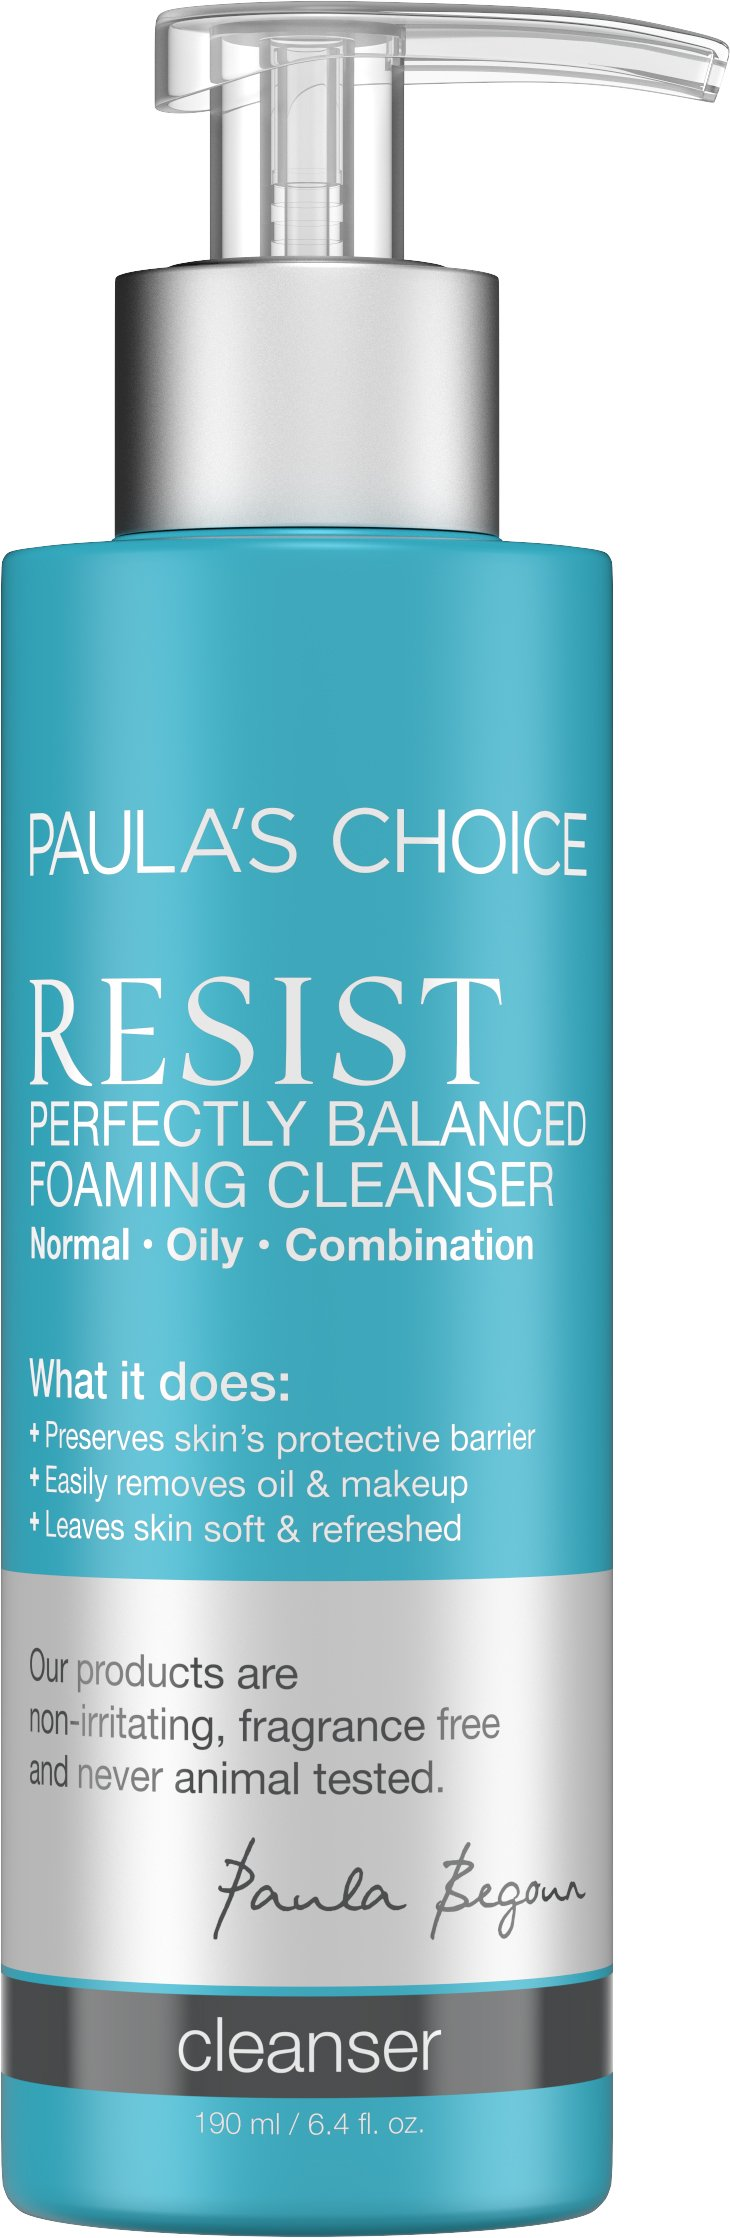 Paula's Choice--RESIST Perfectly Balanced Anti-Aging Cleanser--Facial Cleanser for Normal, Combination, and Oily Skin--1-6.4 oz Bottle